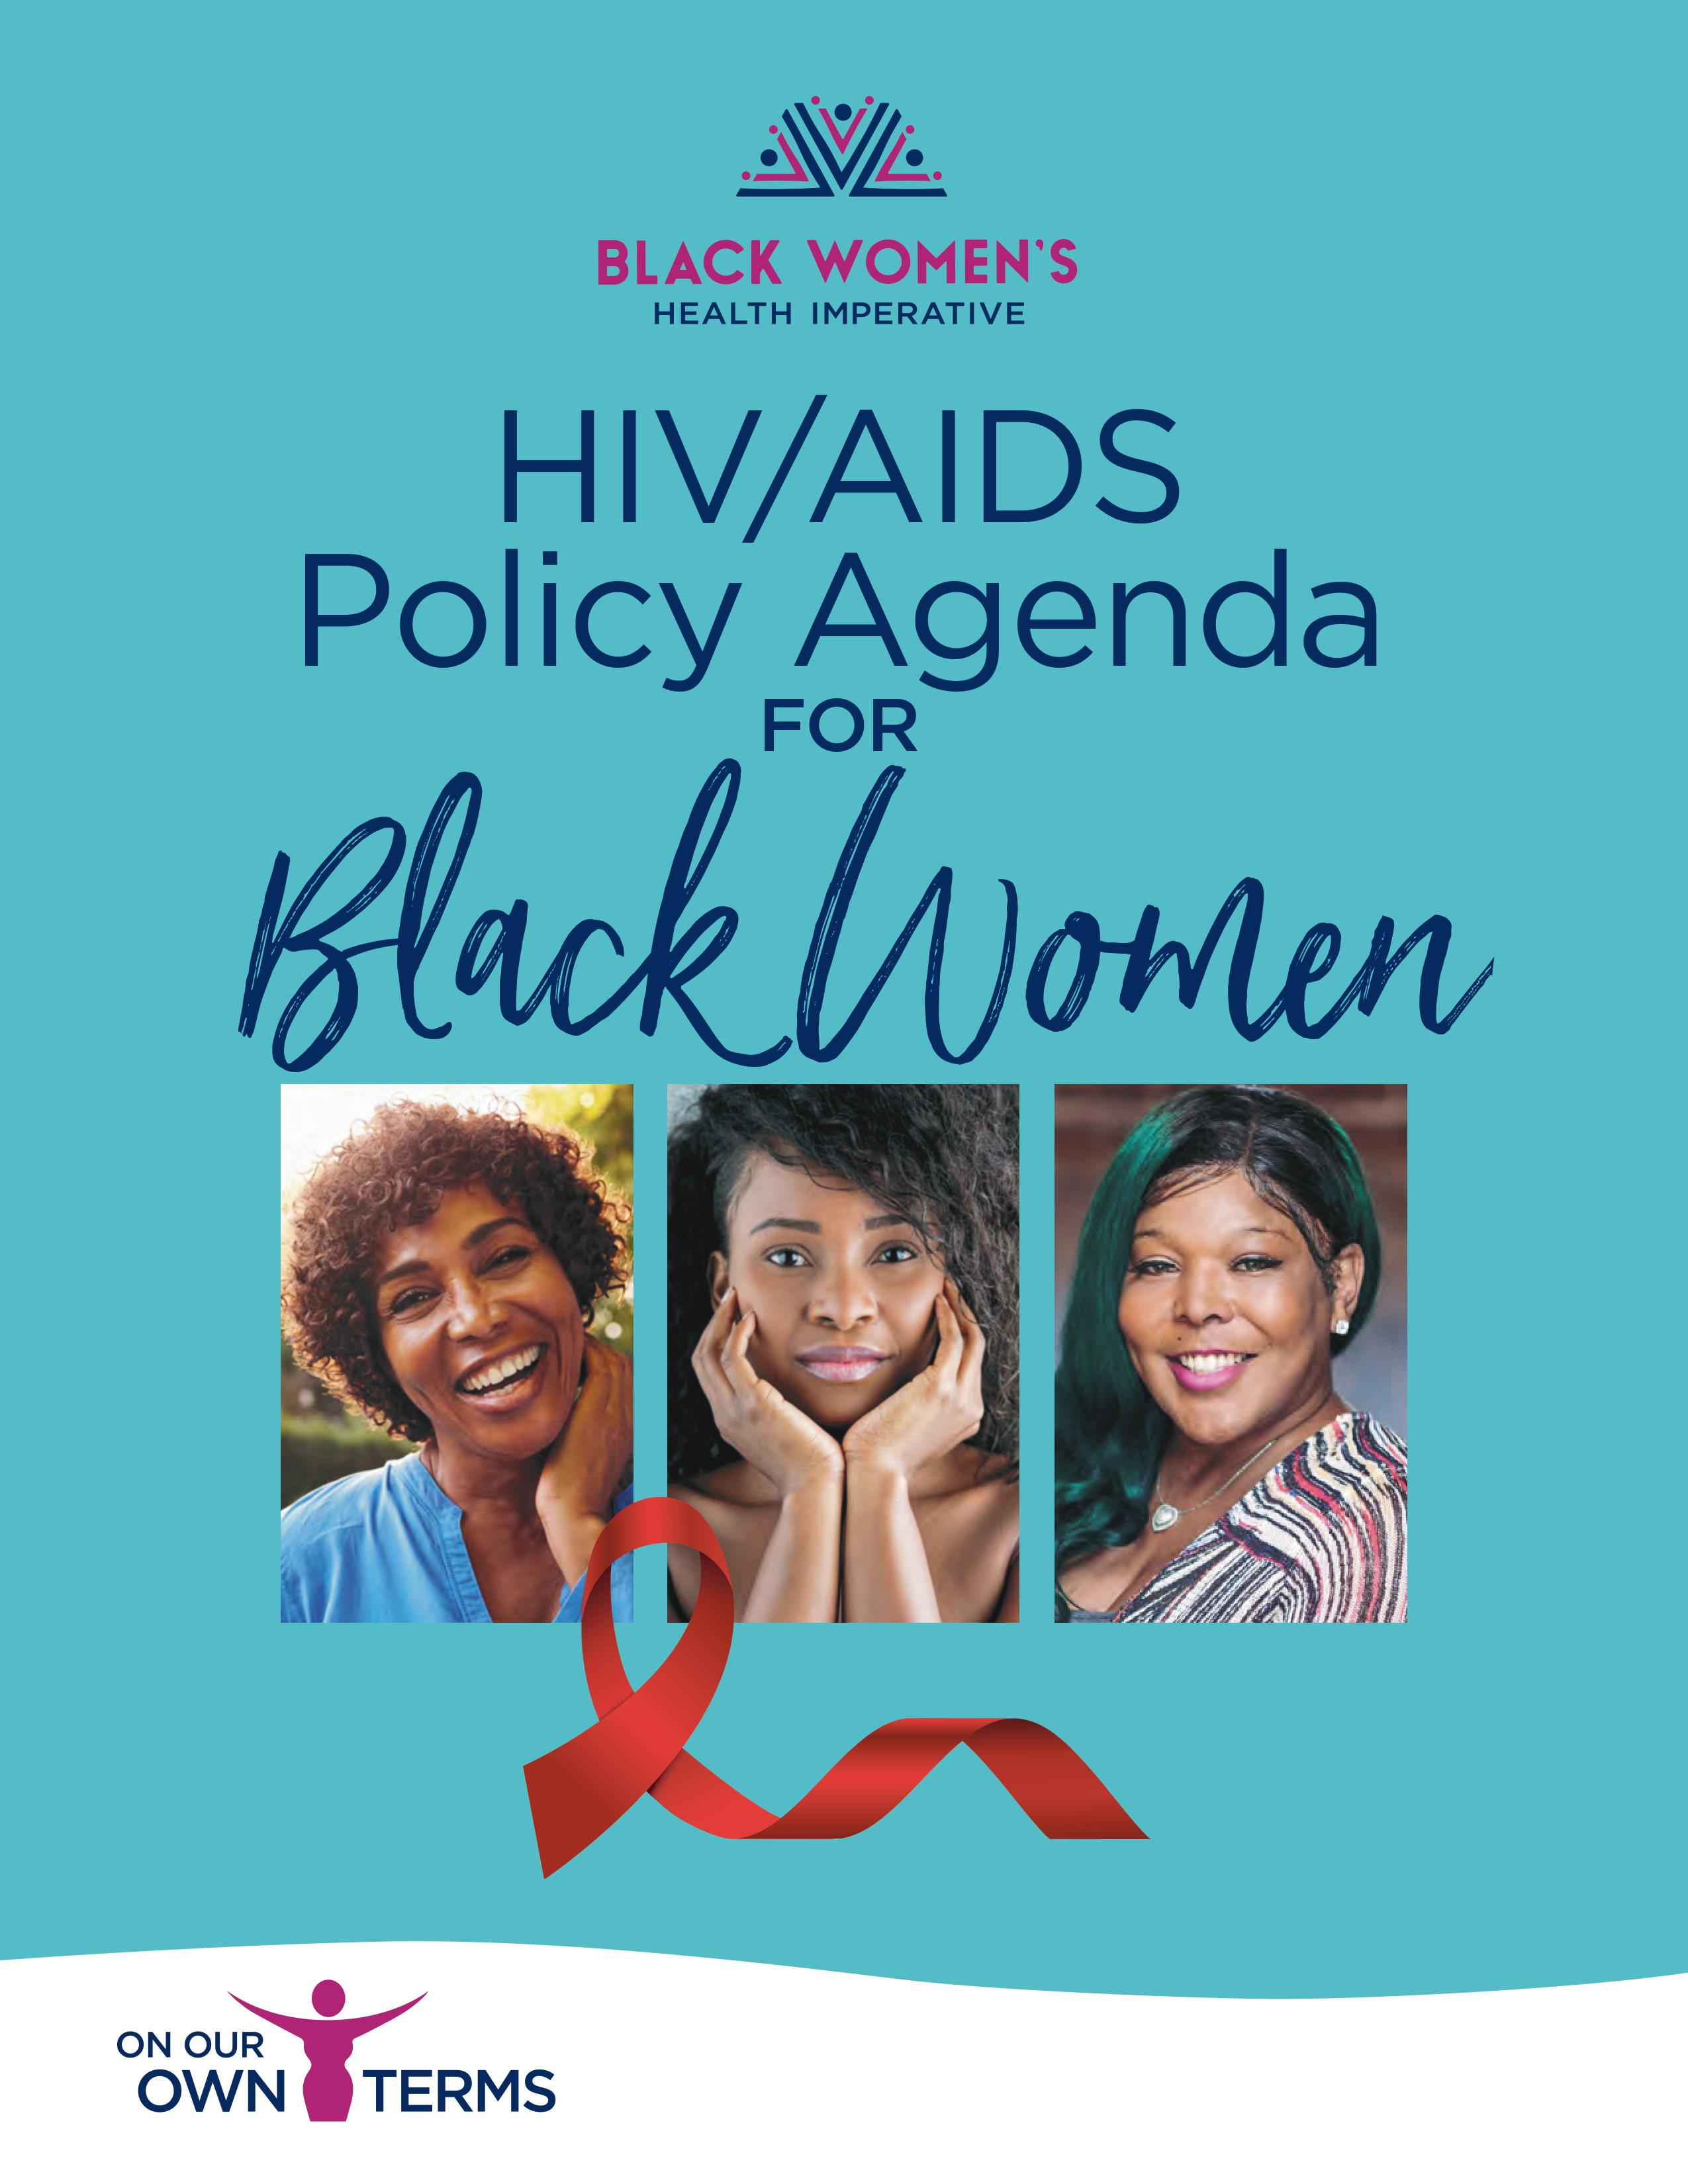 The Black Women's Health Imperative Unveils First-Of-Its-Kind Policy Agenda Addressing HIV/AIDS Epidemic Among Black Women